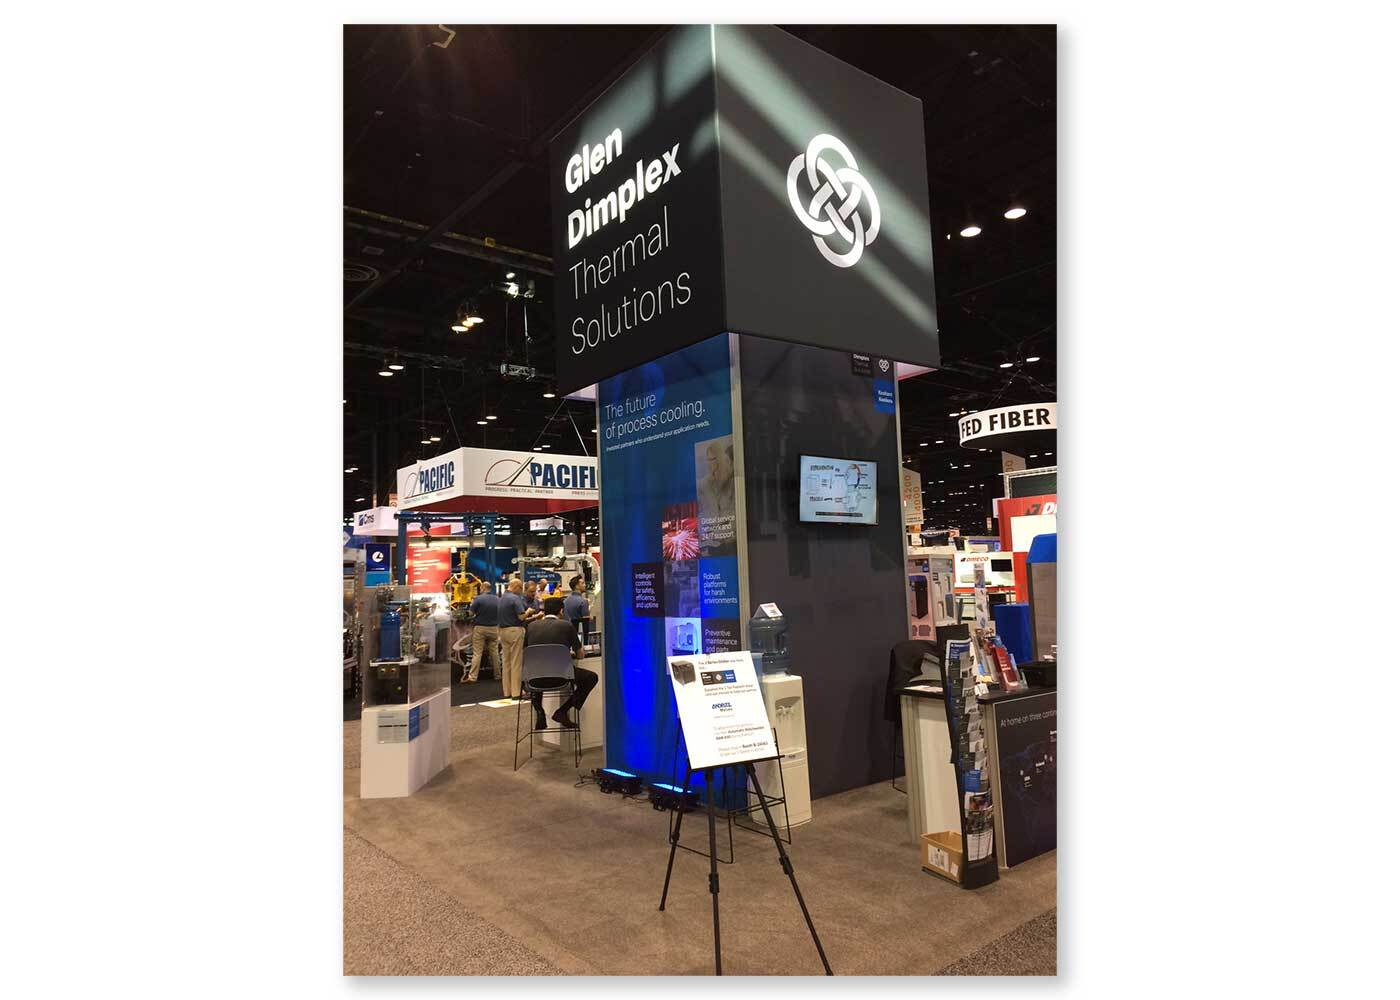 Glen Dimplex Thermal Solutions trade show materials - Experience